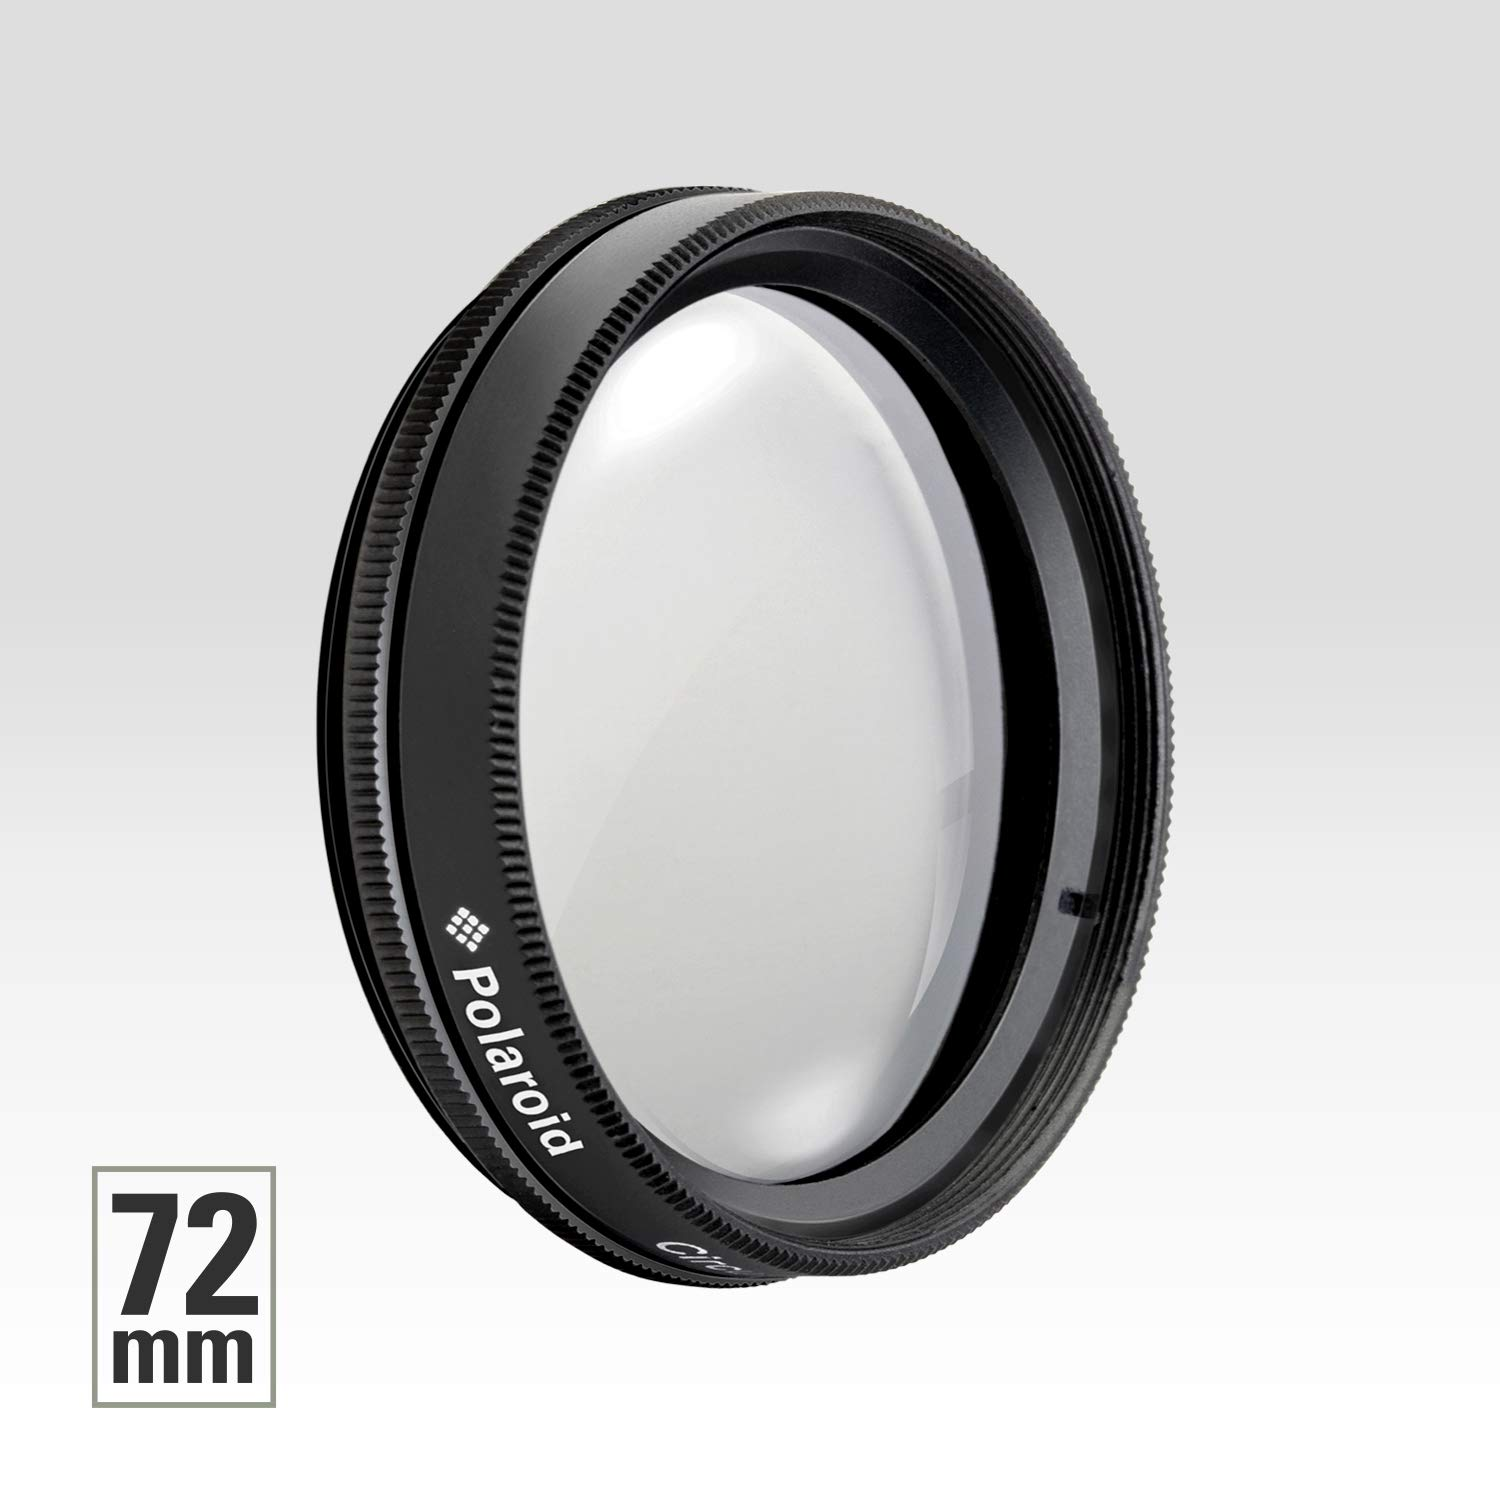 Polaroid Optics 46mm Multi-Coated Circular Polarizer Filter CPL Contrast /& Reflection Control Compatible w// All Popular Camera Lens Models For /'On Location/' Color Saturation